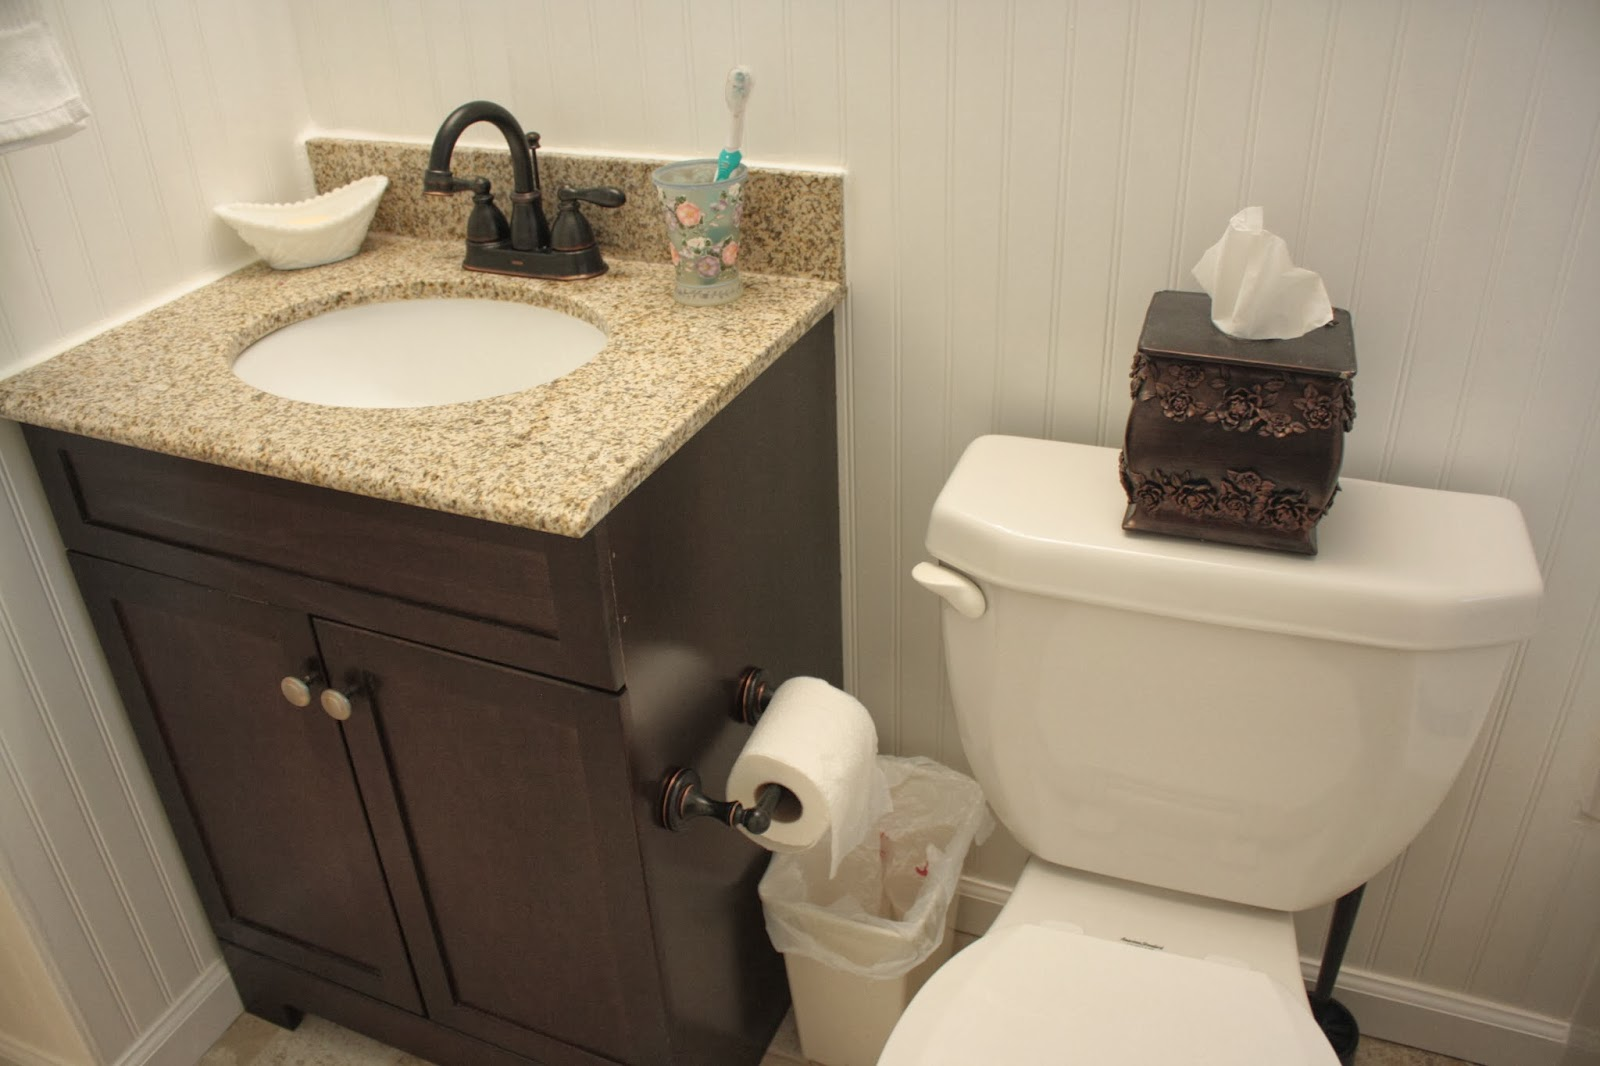 lowes bathroom sinks for small bathrooms, Bathroom decor